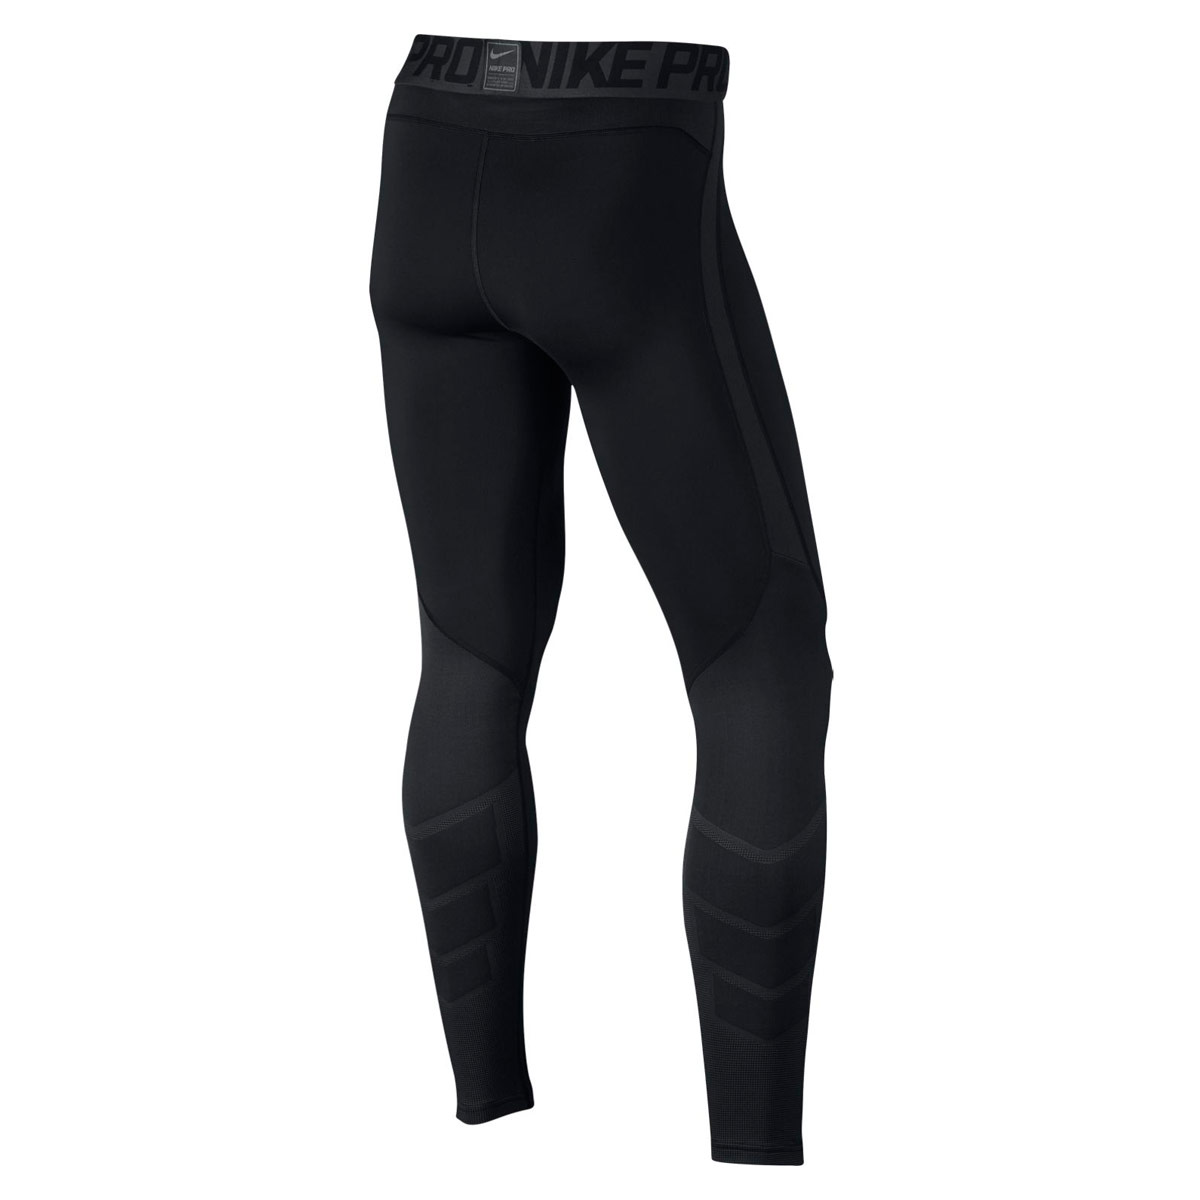 Splinternye Nike Pro Hyperwarm Tights - Functional underwear for Men - Black JQ-23